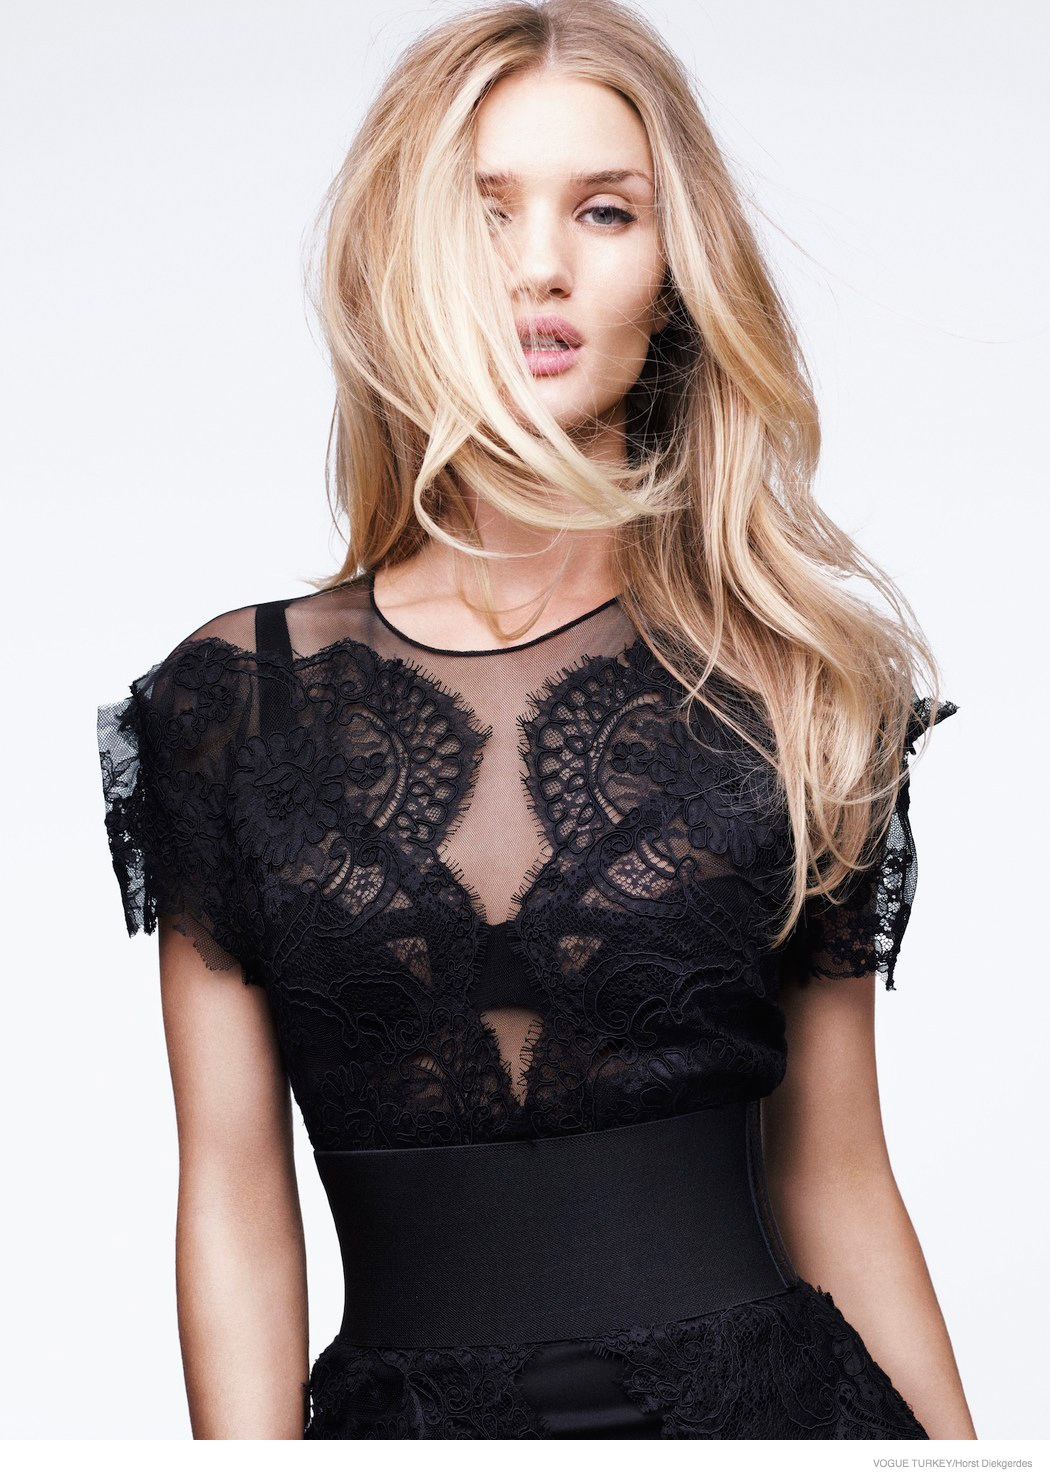 rosie-huntington-whiteley-lace-looks01